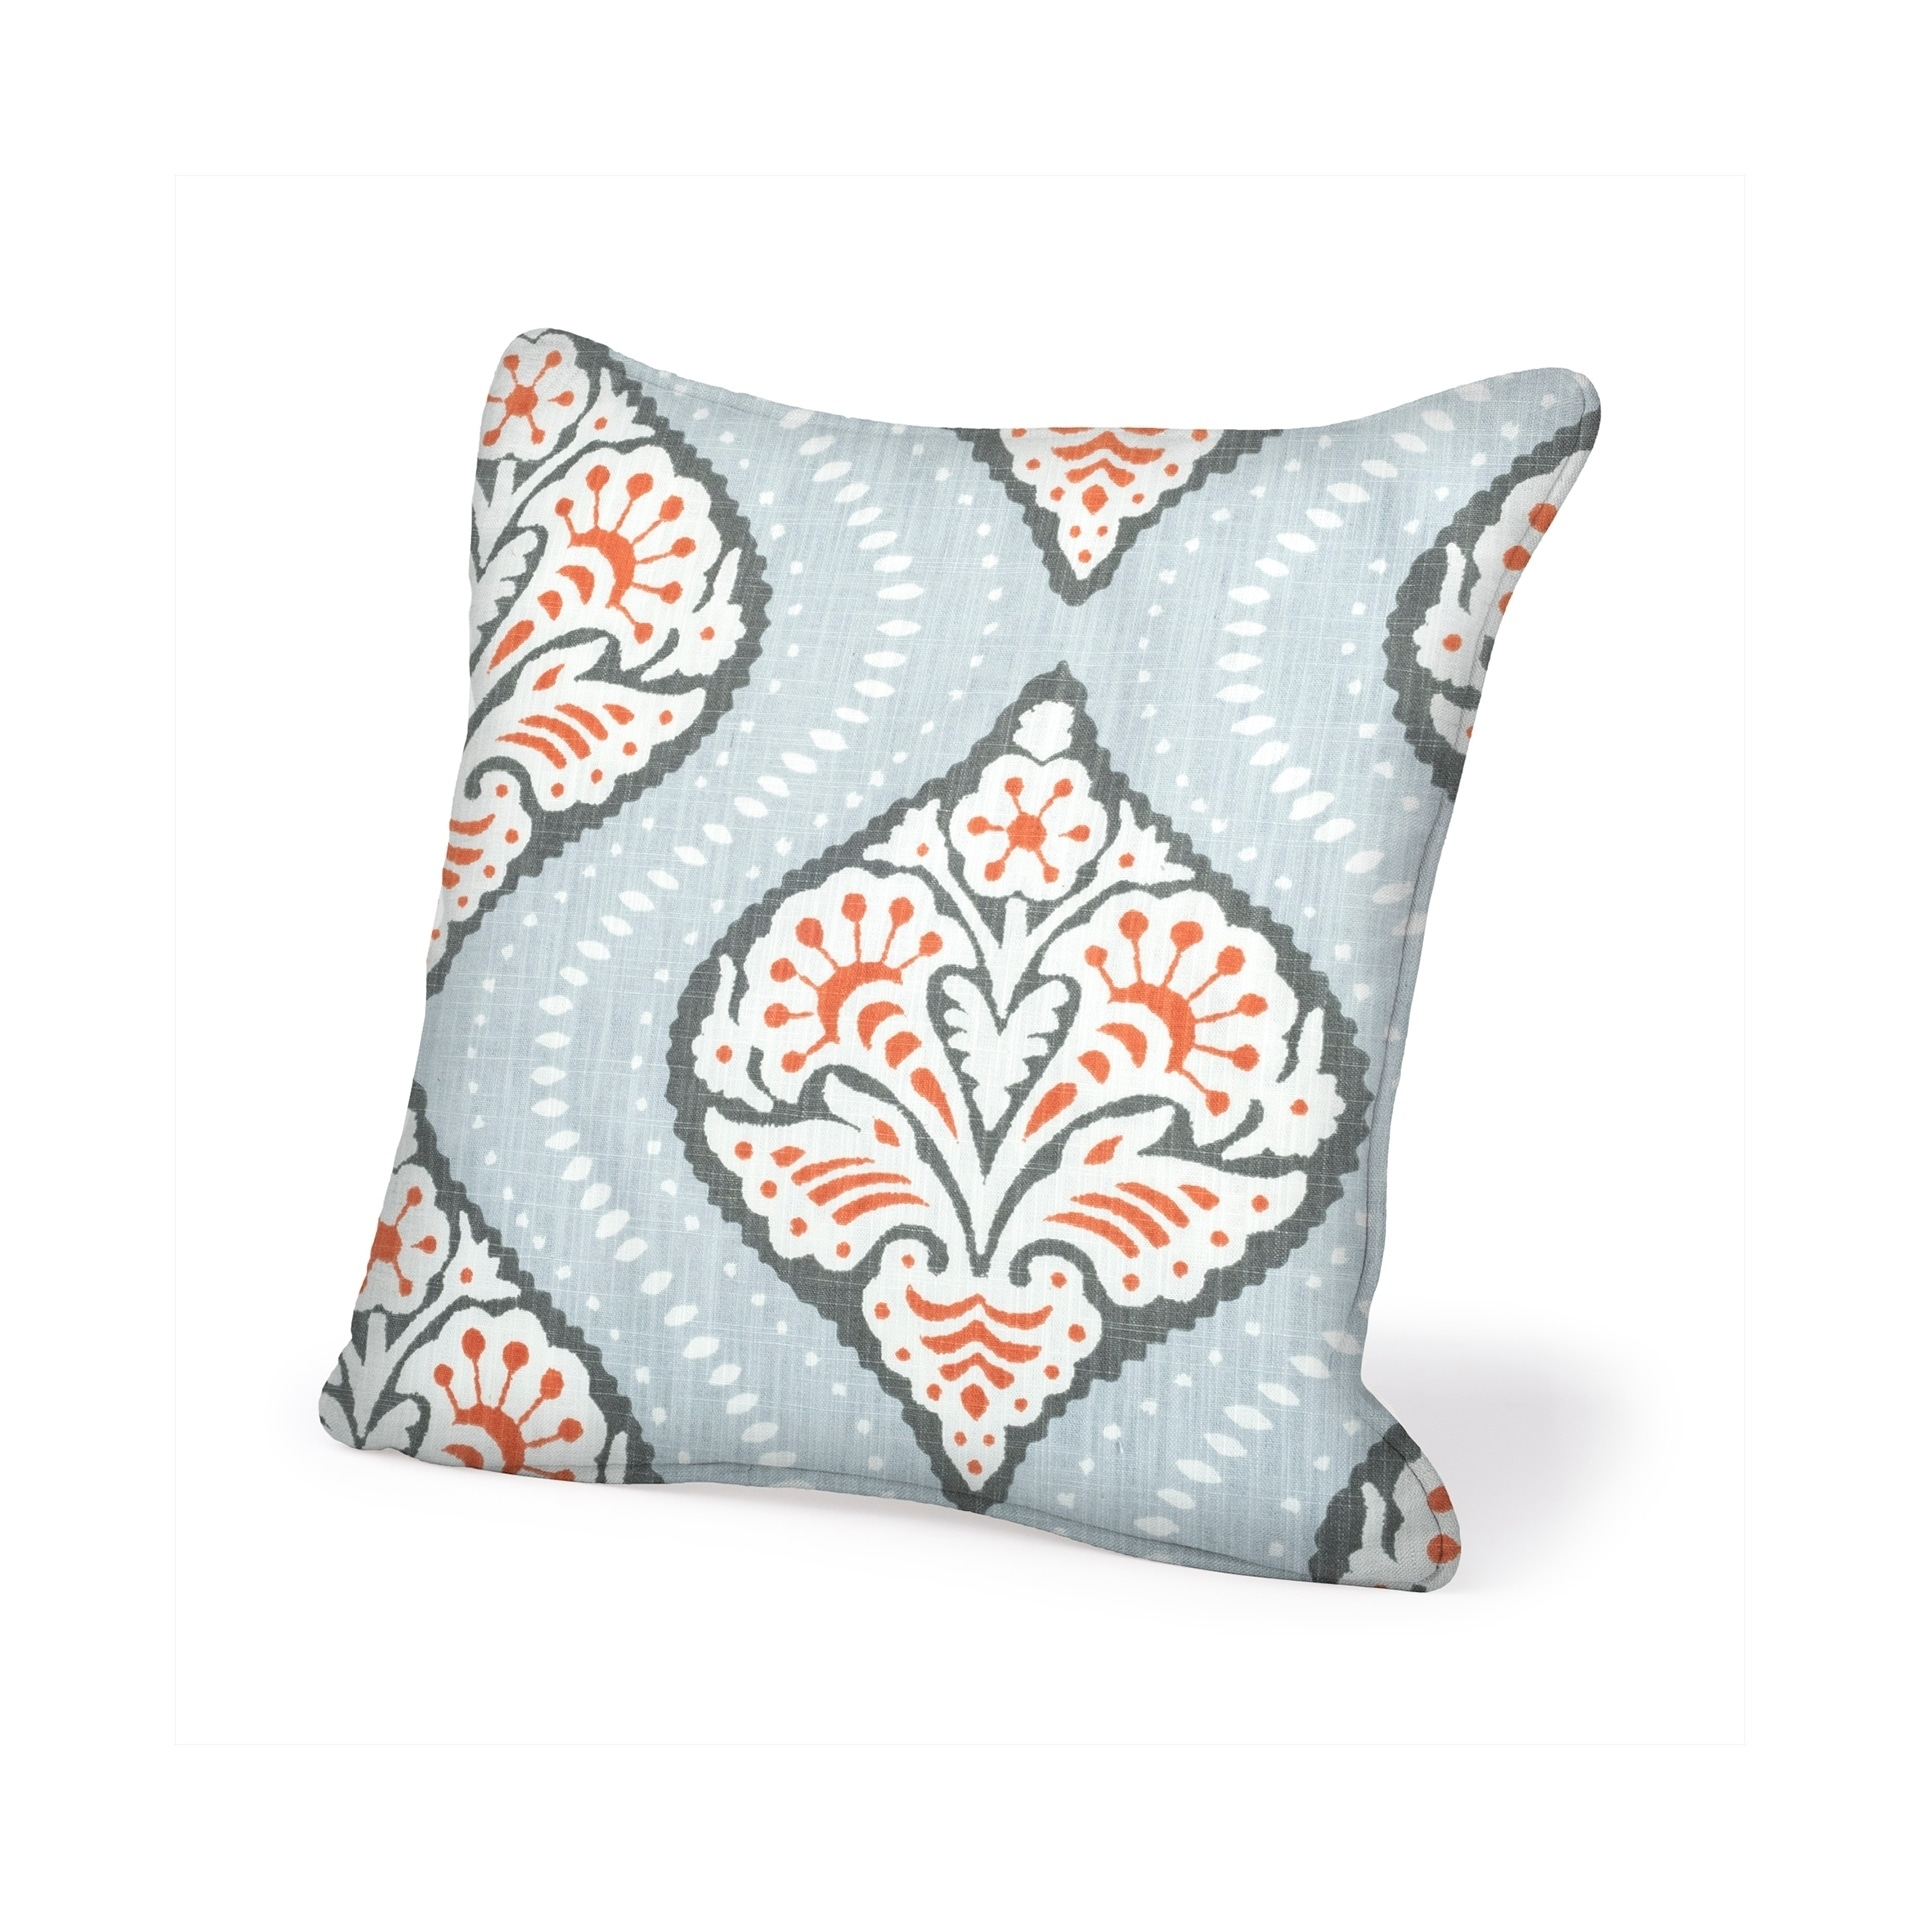 Mercana Snapdragon I 18 x 18 (cover only) Decorative Pillow